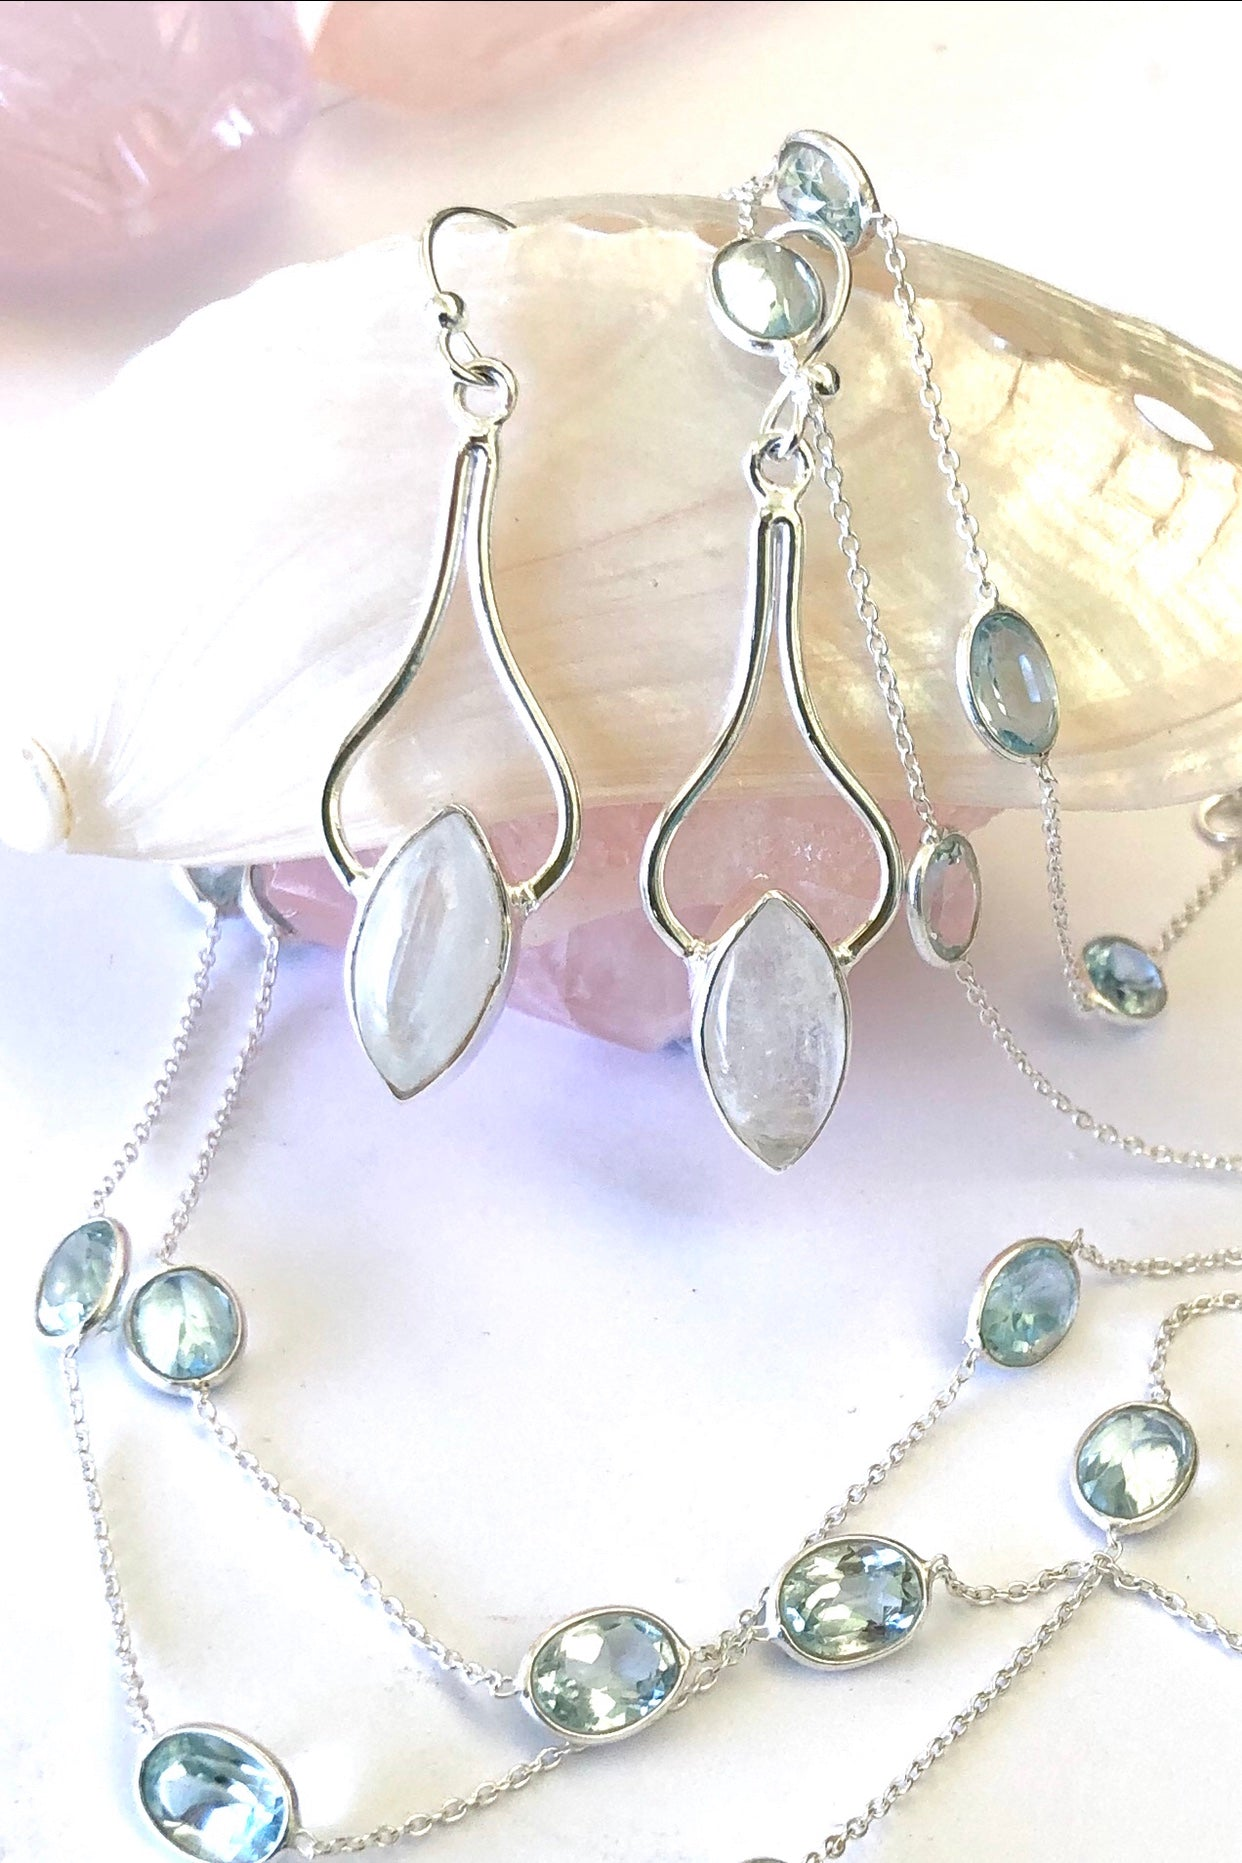 gemstone in a silver earring